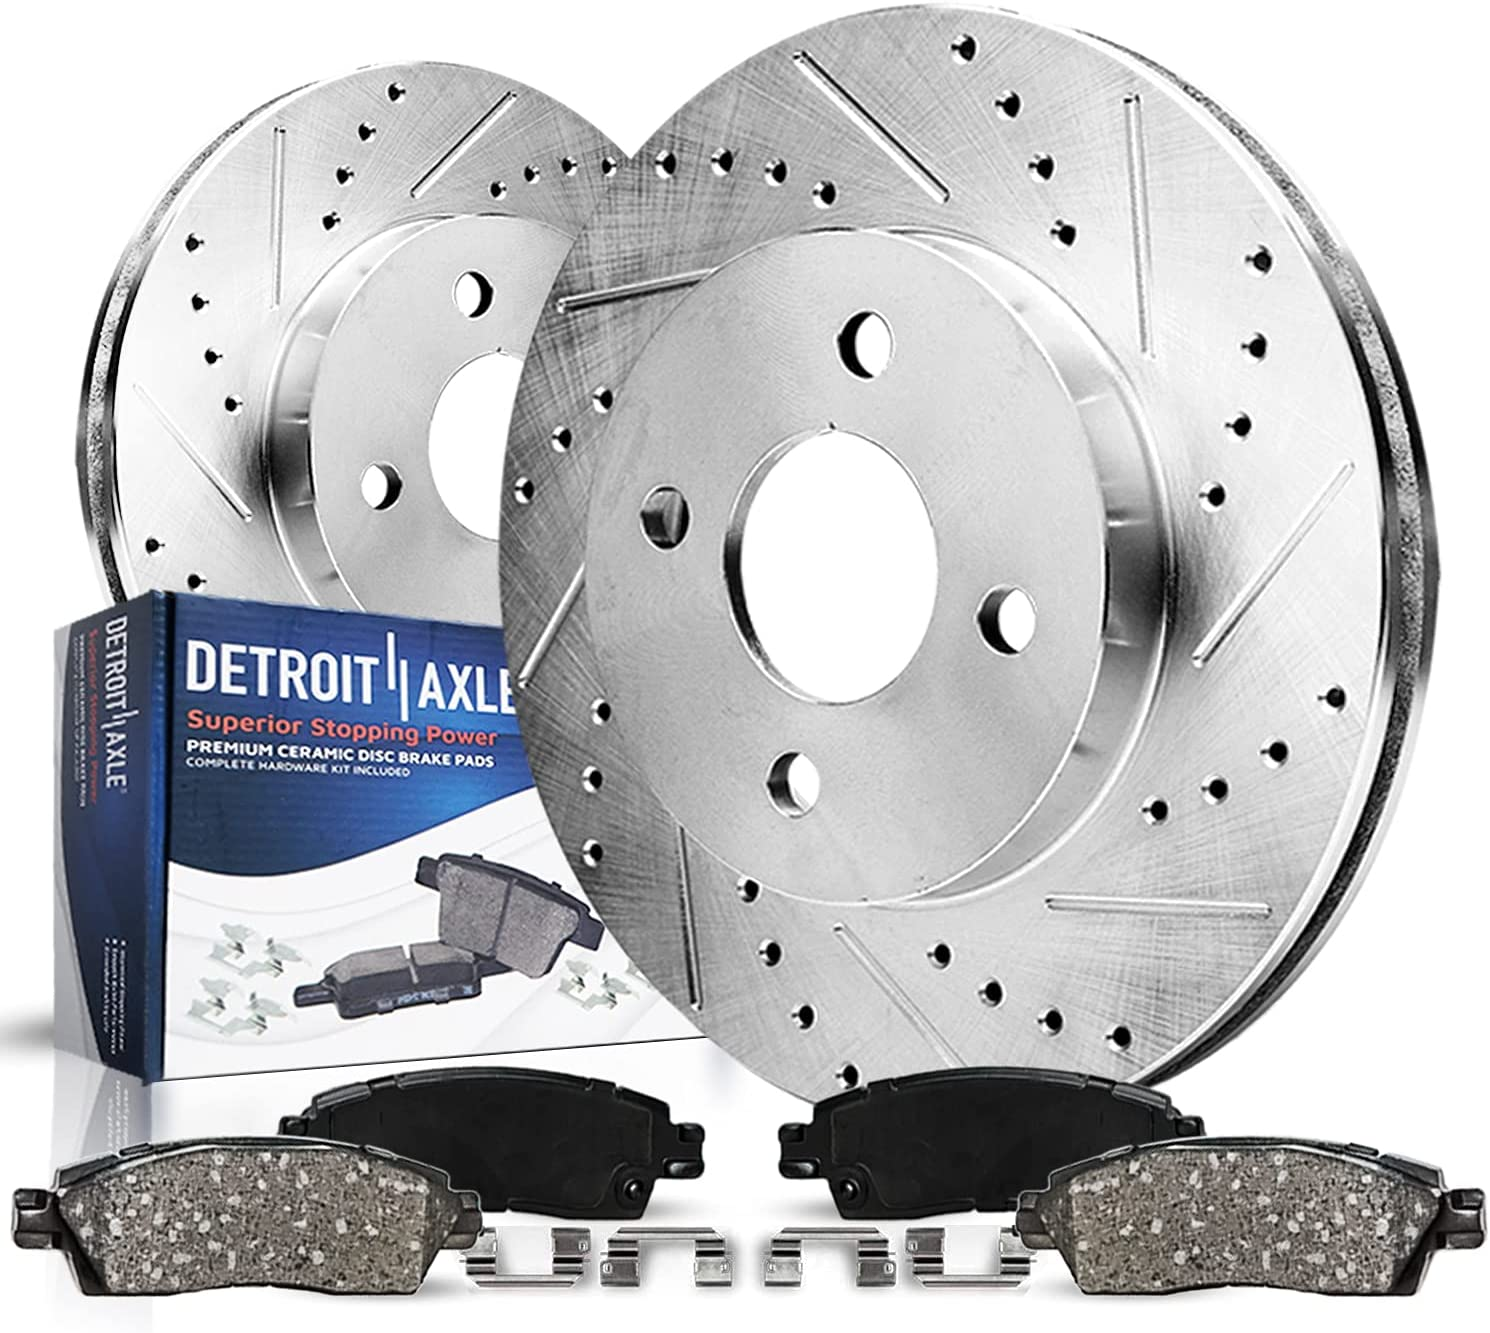 Detroit Axle - 240mm Inexpensive Drilled Brake Rear Slotted Rotors Charlotte Mall